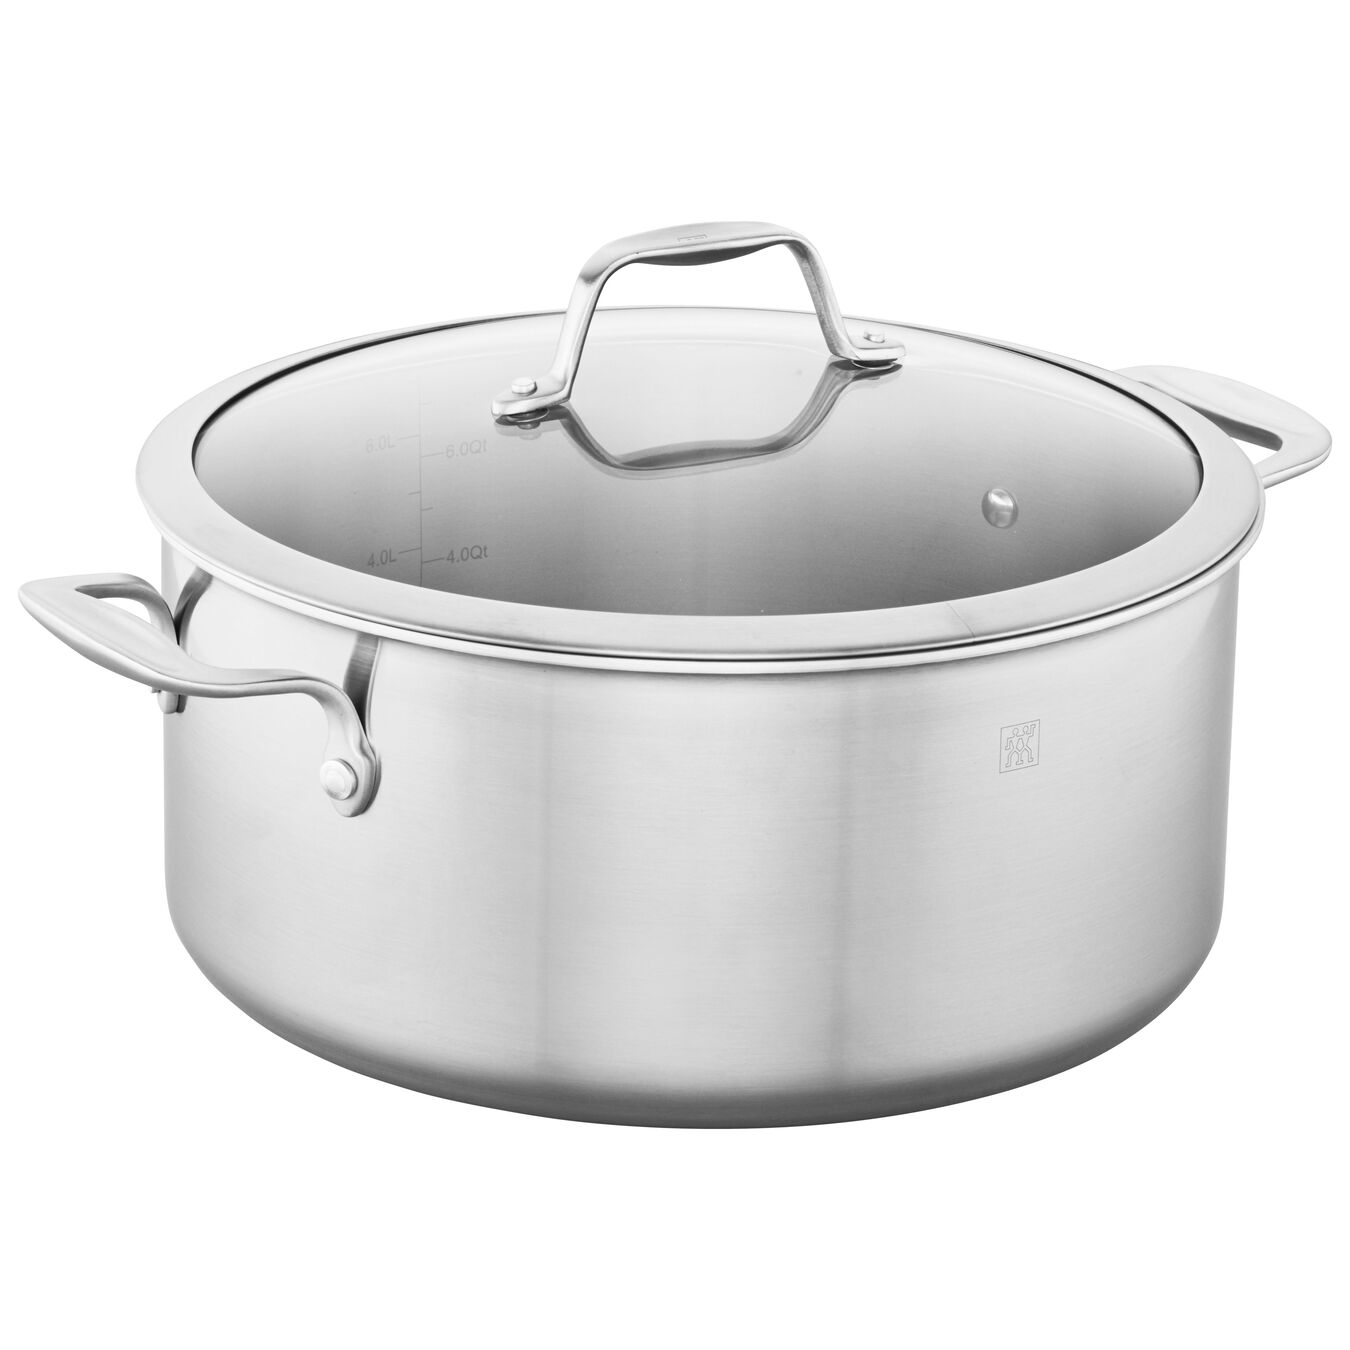 8 qt, Stainless Steel Dutch Oven,,large 2